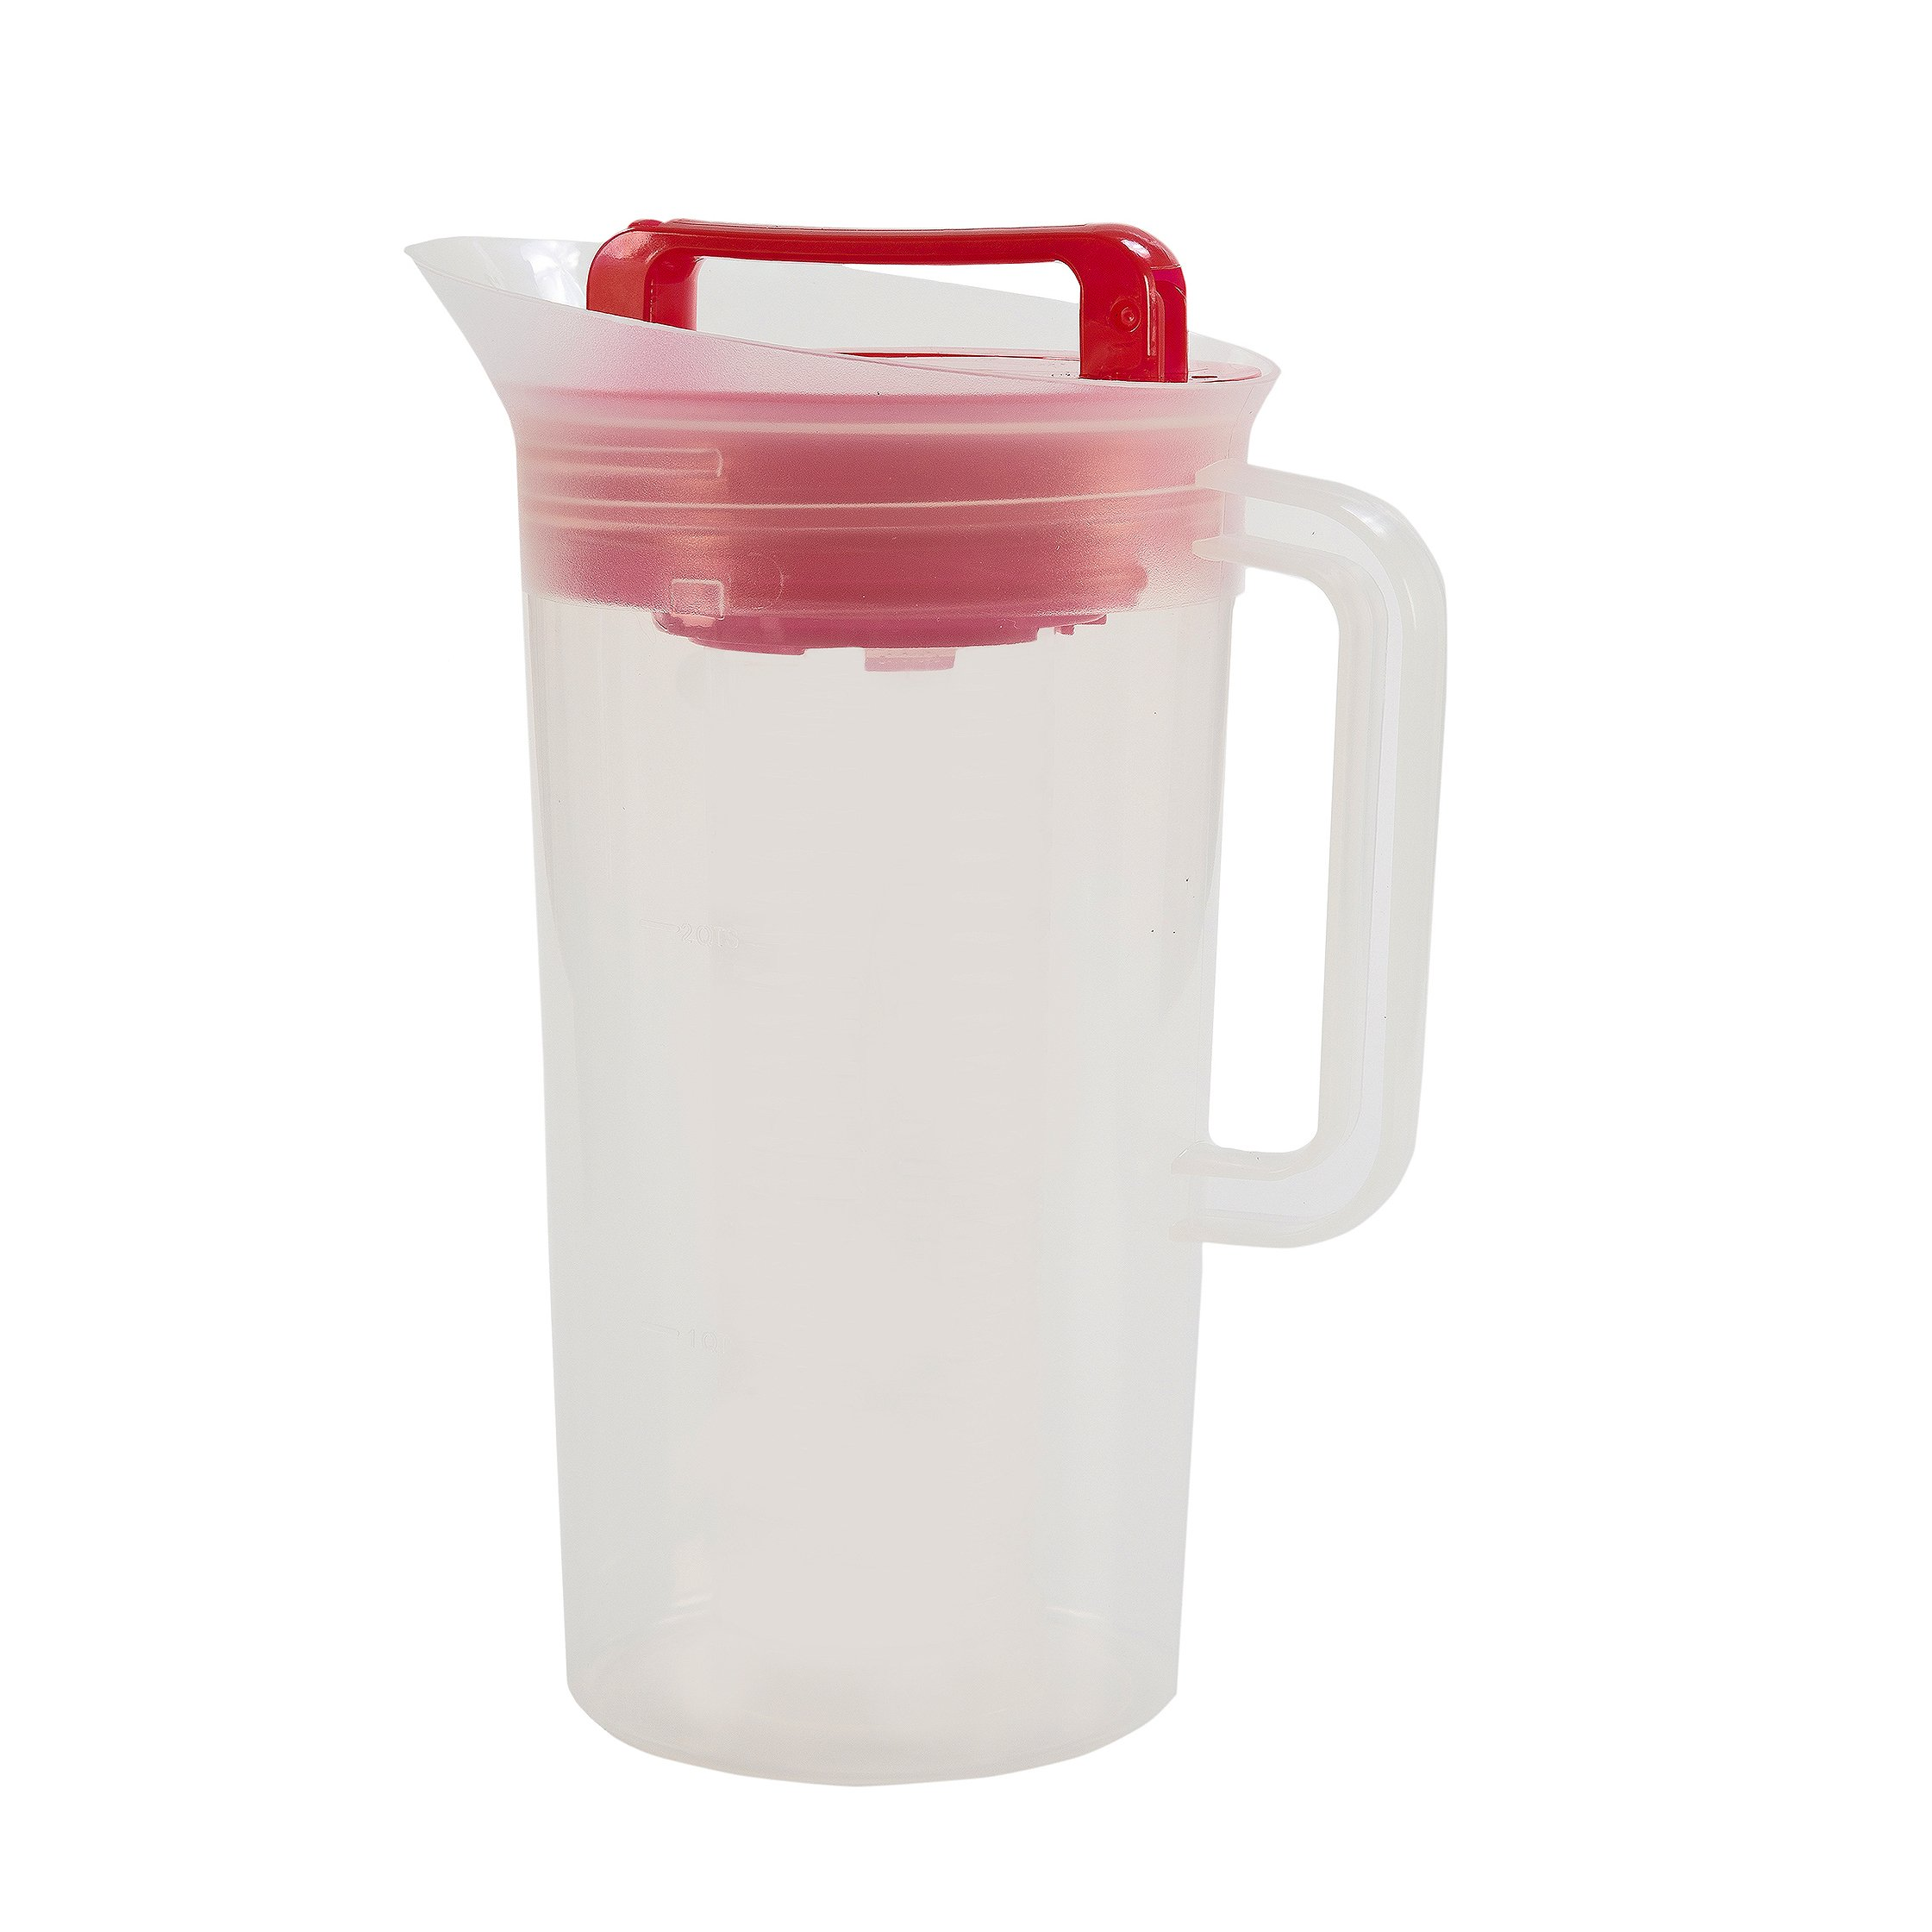 Primula TSIRE-3630 Today Shake and Infuse Pitcher, 8.2 x 6.4 x 11.1 inches, Red